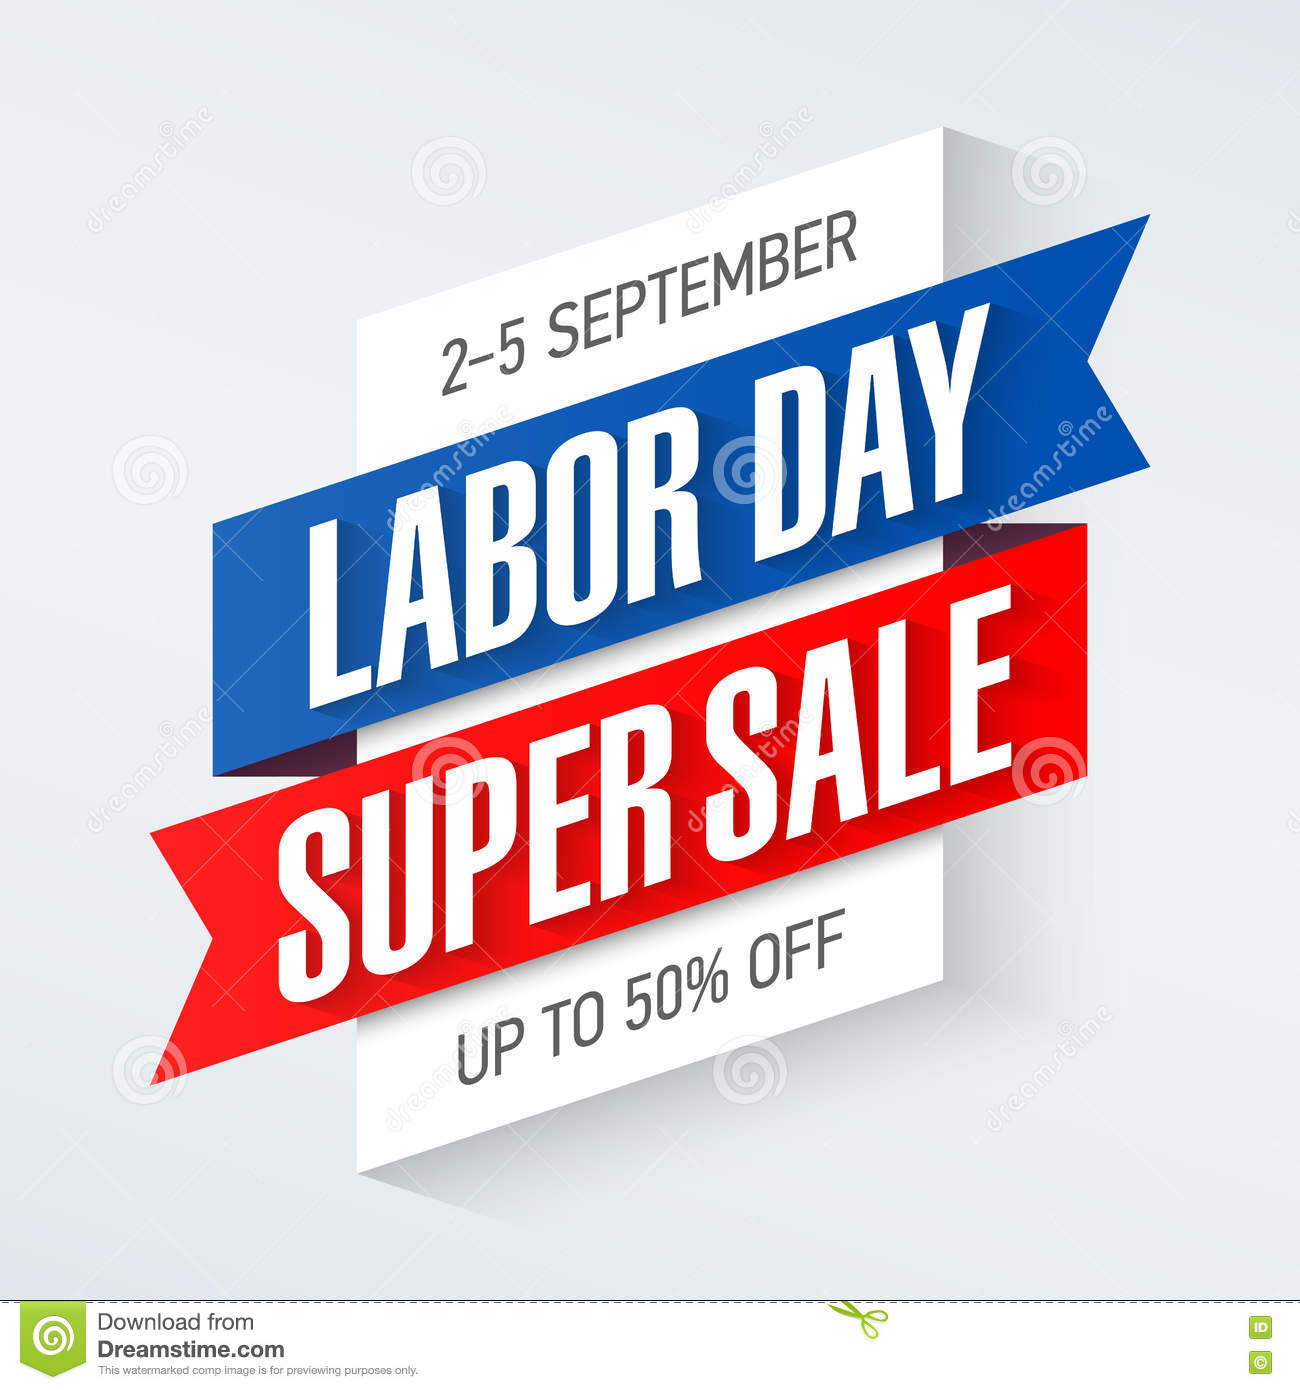 Weekend Sale Banner: Labor Day Super Sale Banner Stock Vector